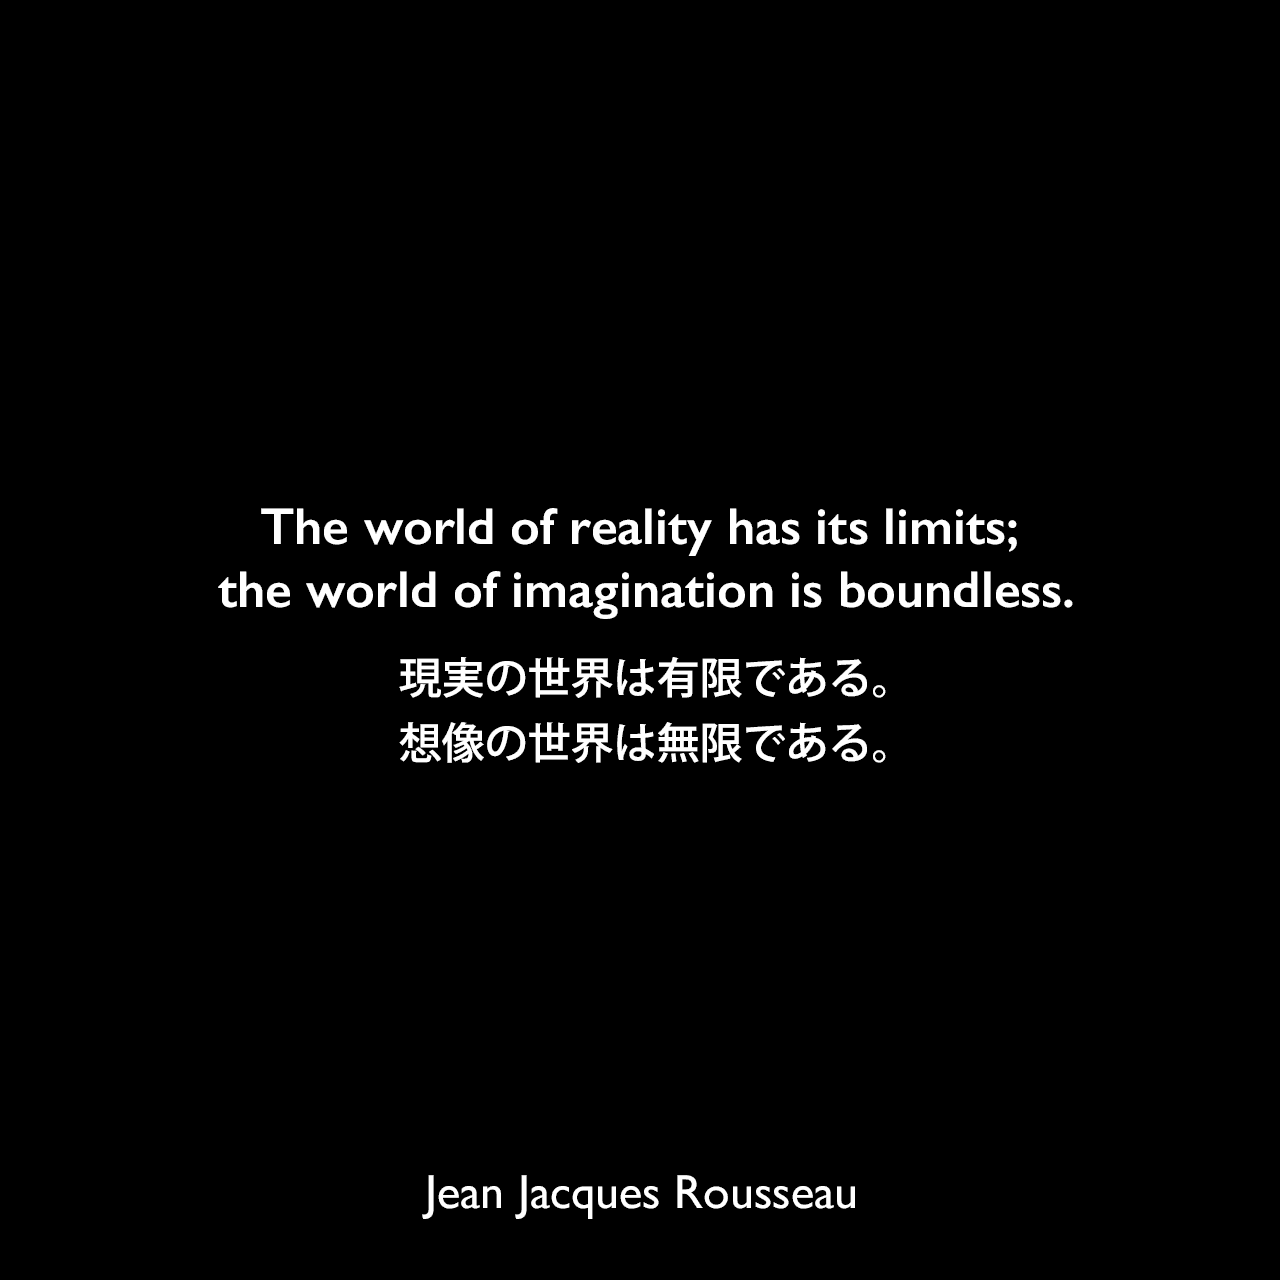 The world of reality has its limits; the world of imagination is boundless.現実の世界は有限である。想像の世界は無限である。Jean Jacques Rousseau